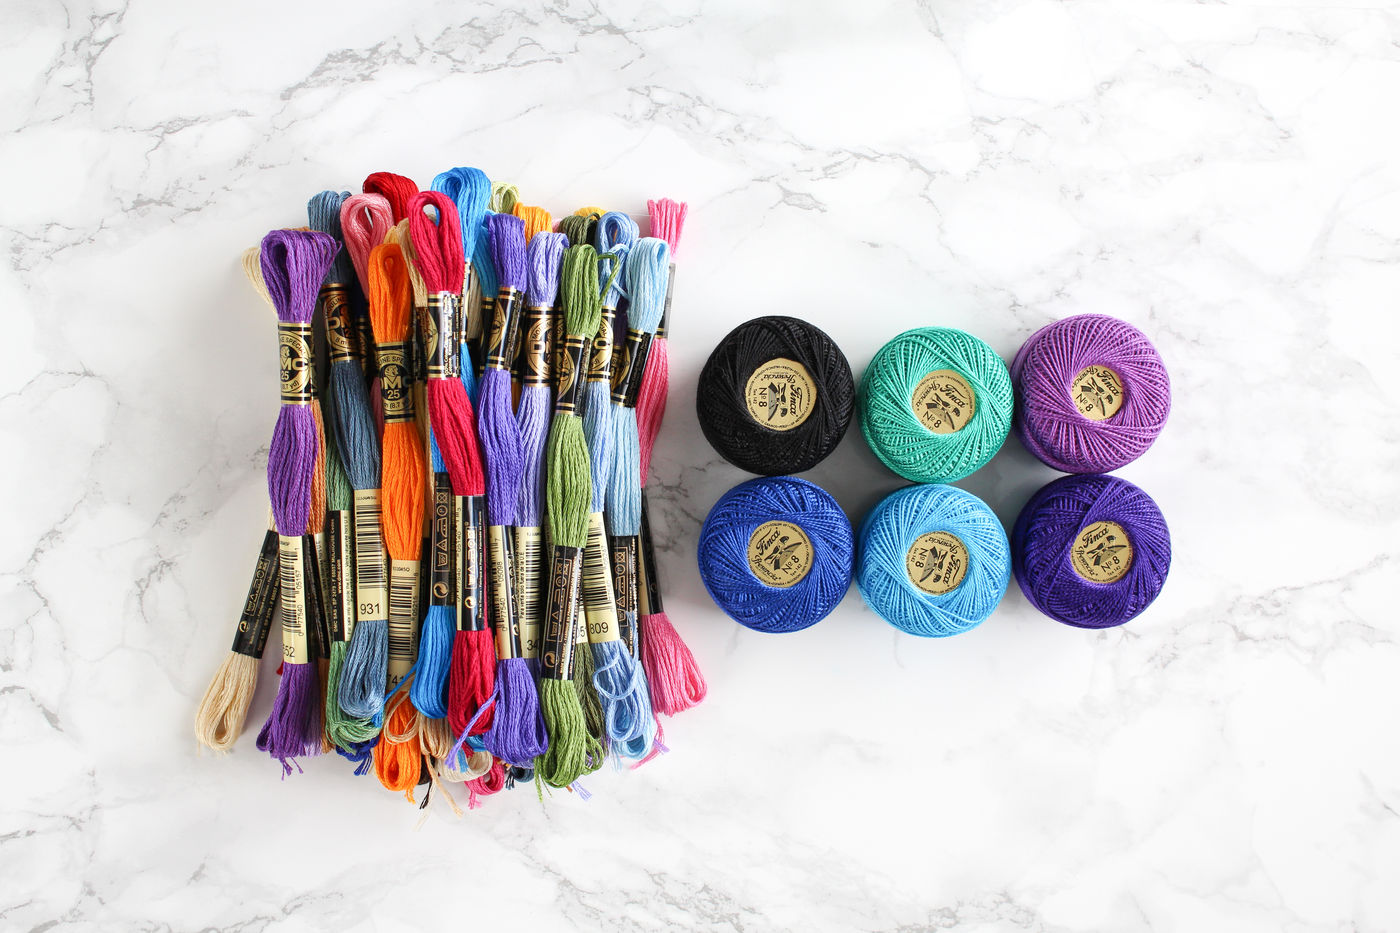 Choosing Embroidery Floss